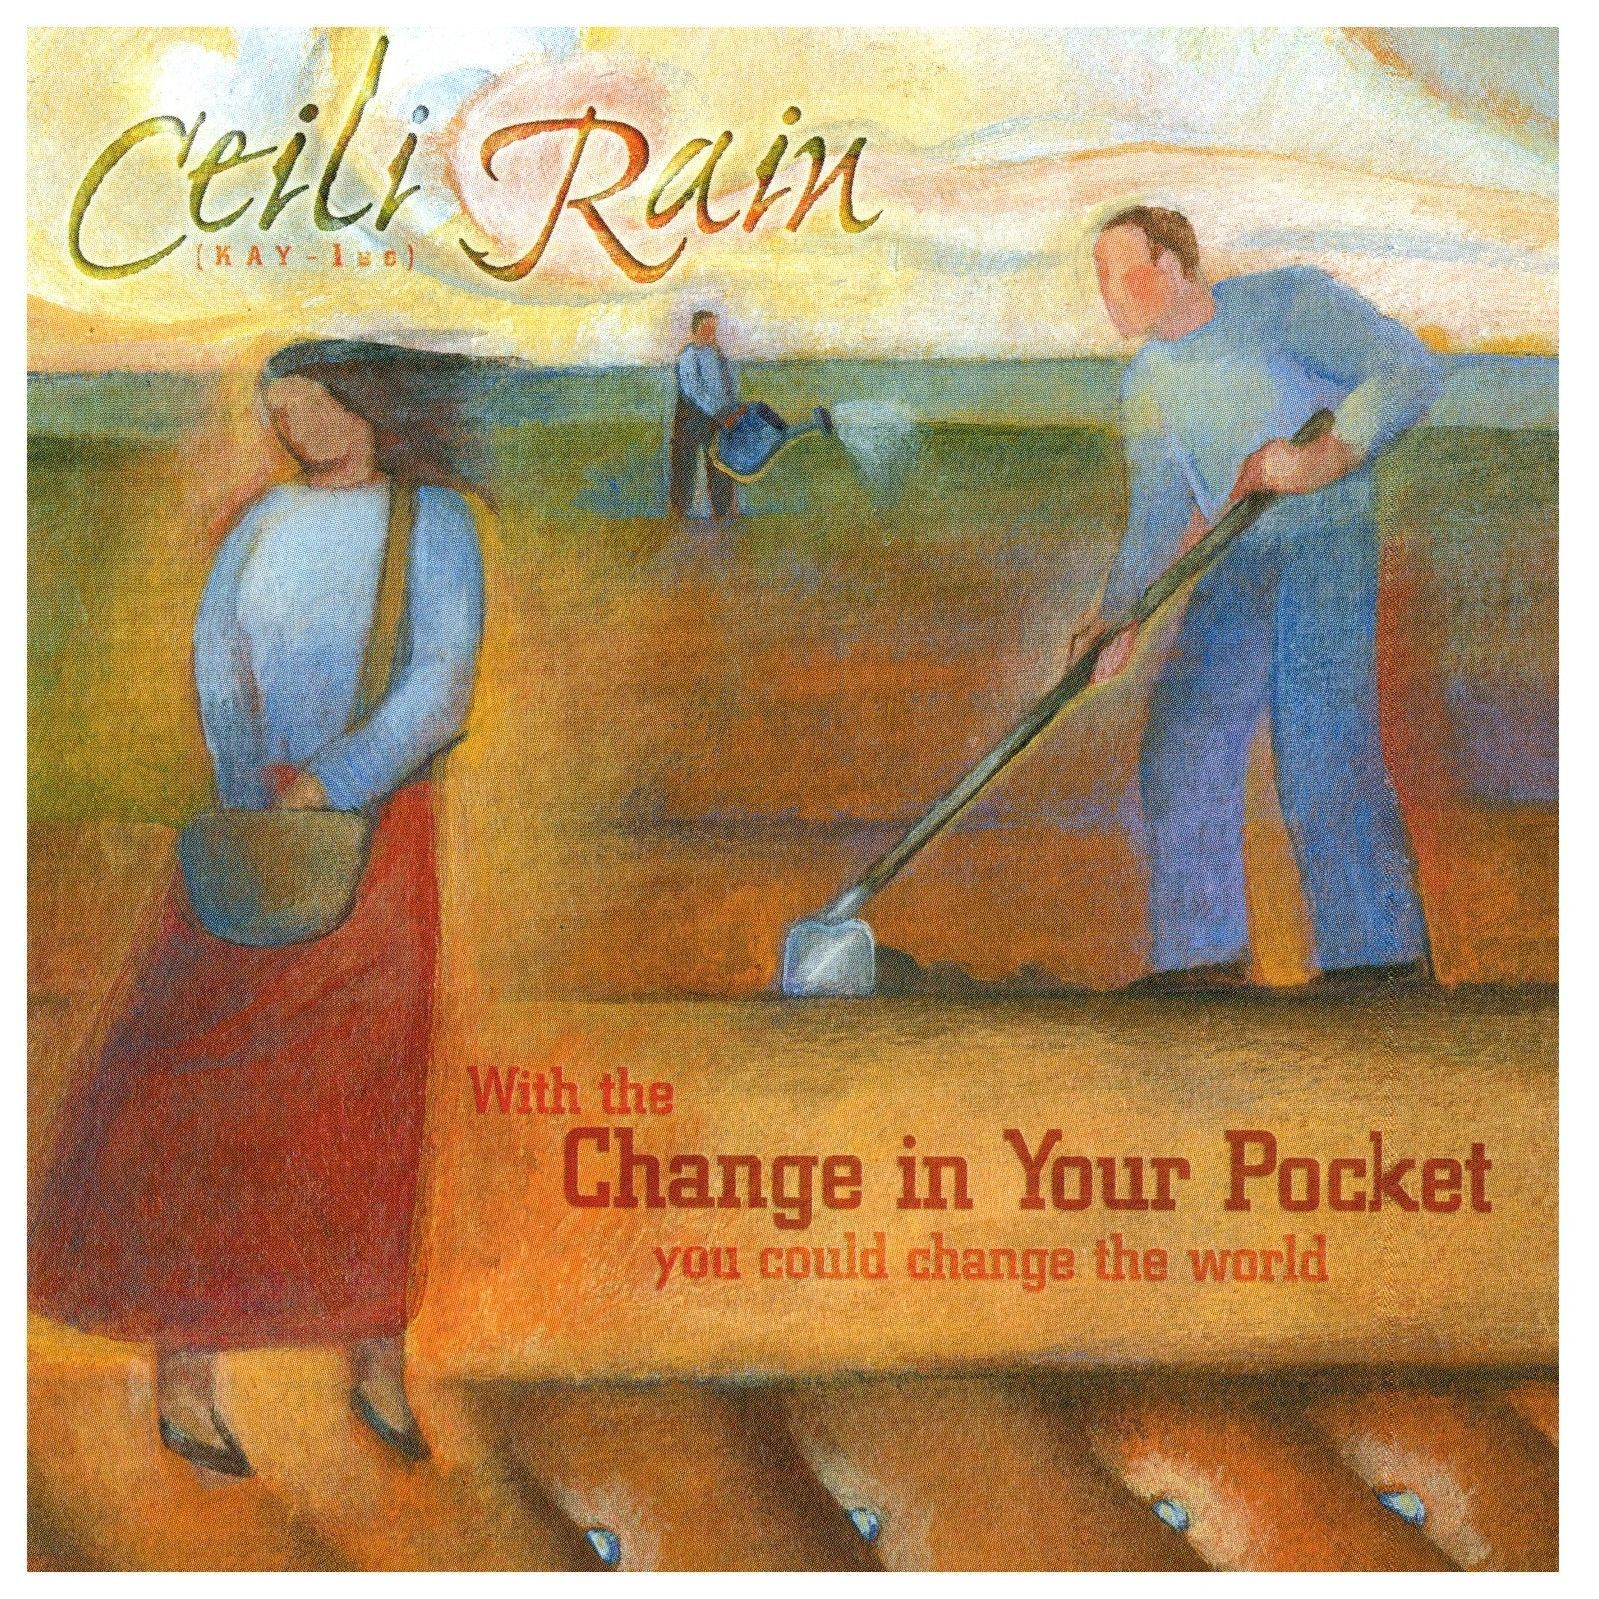 Change in your pocket by ceili rain